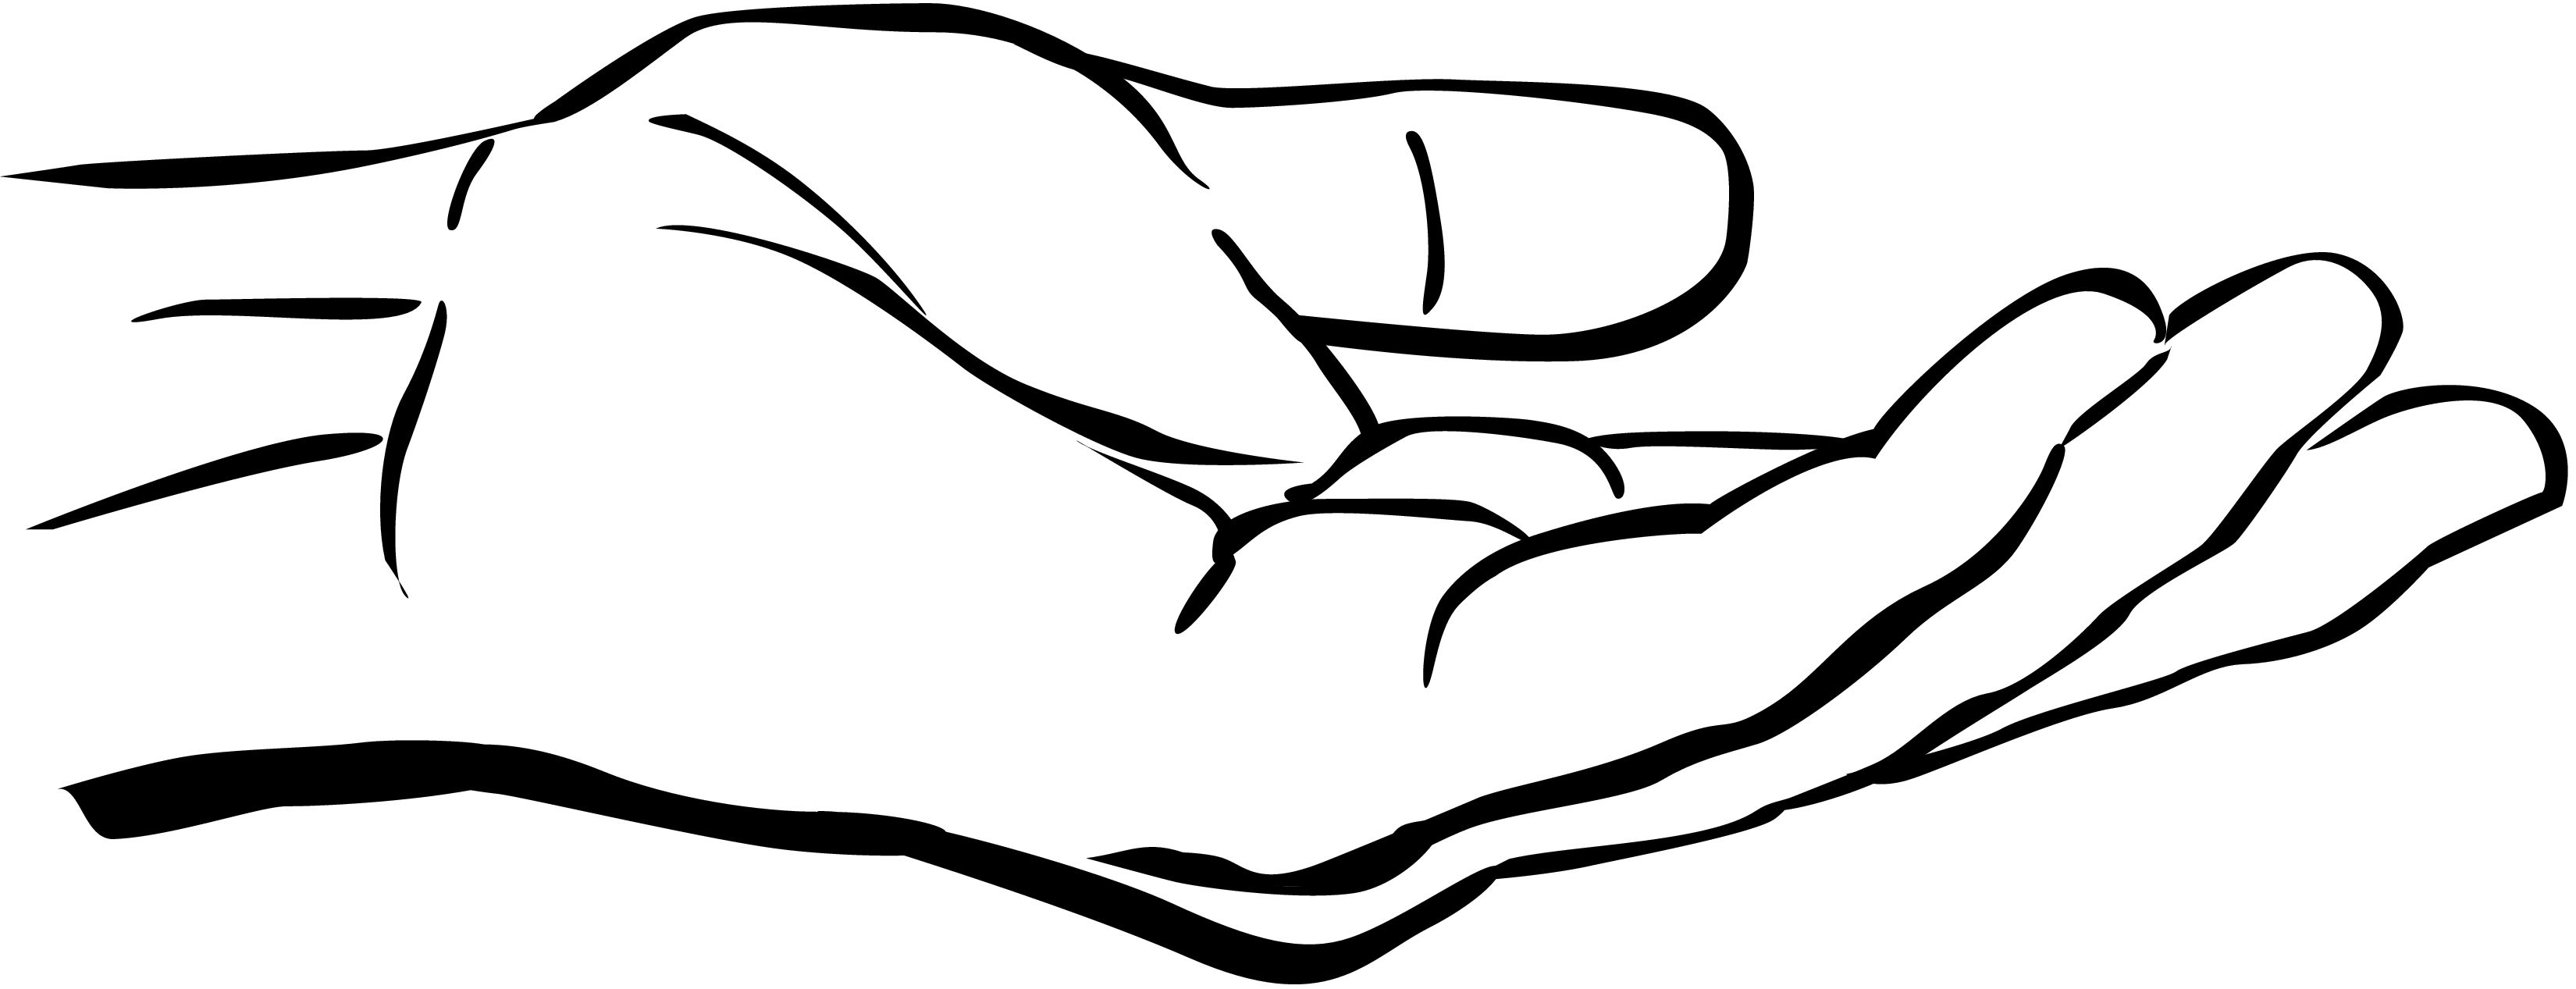 outstretched-hand-clipart.jpg 3,300×1,267 pixels